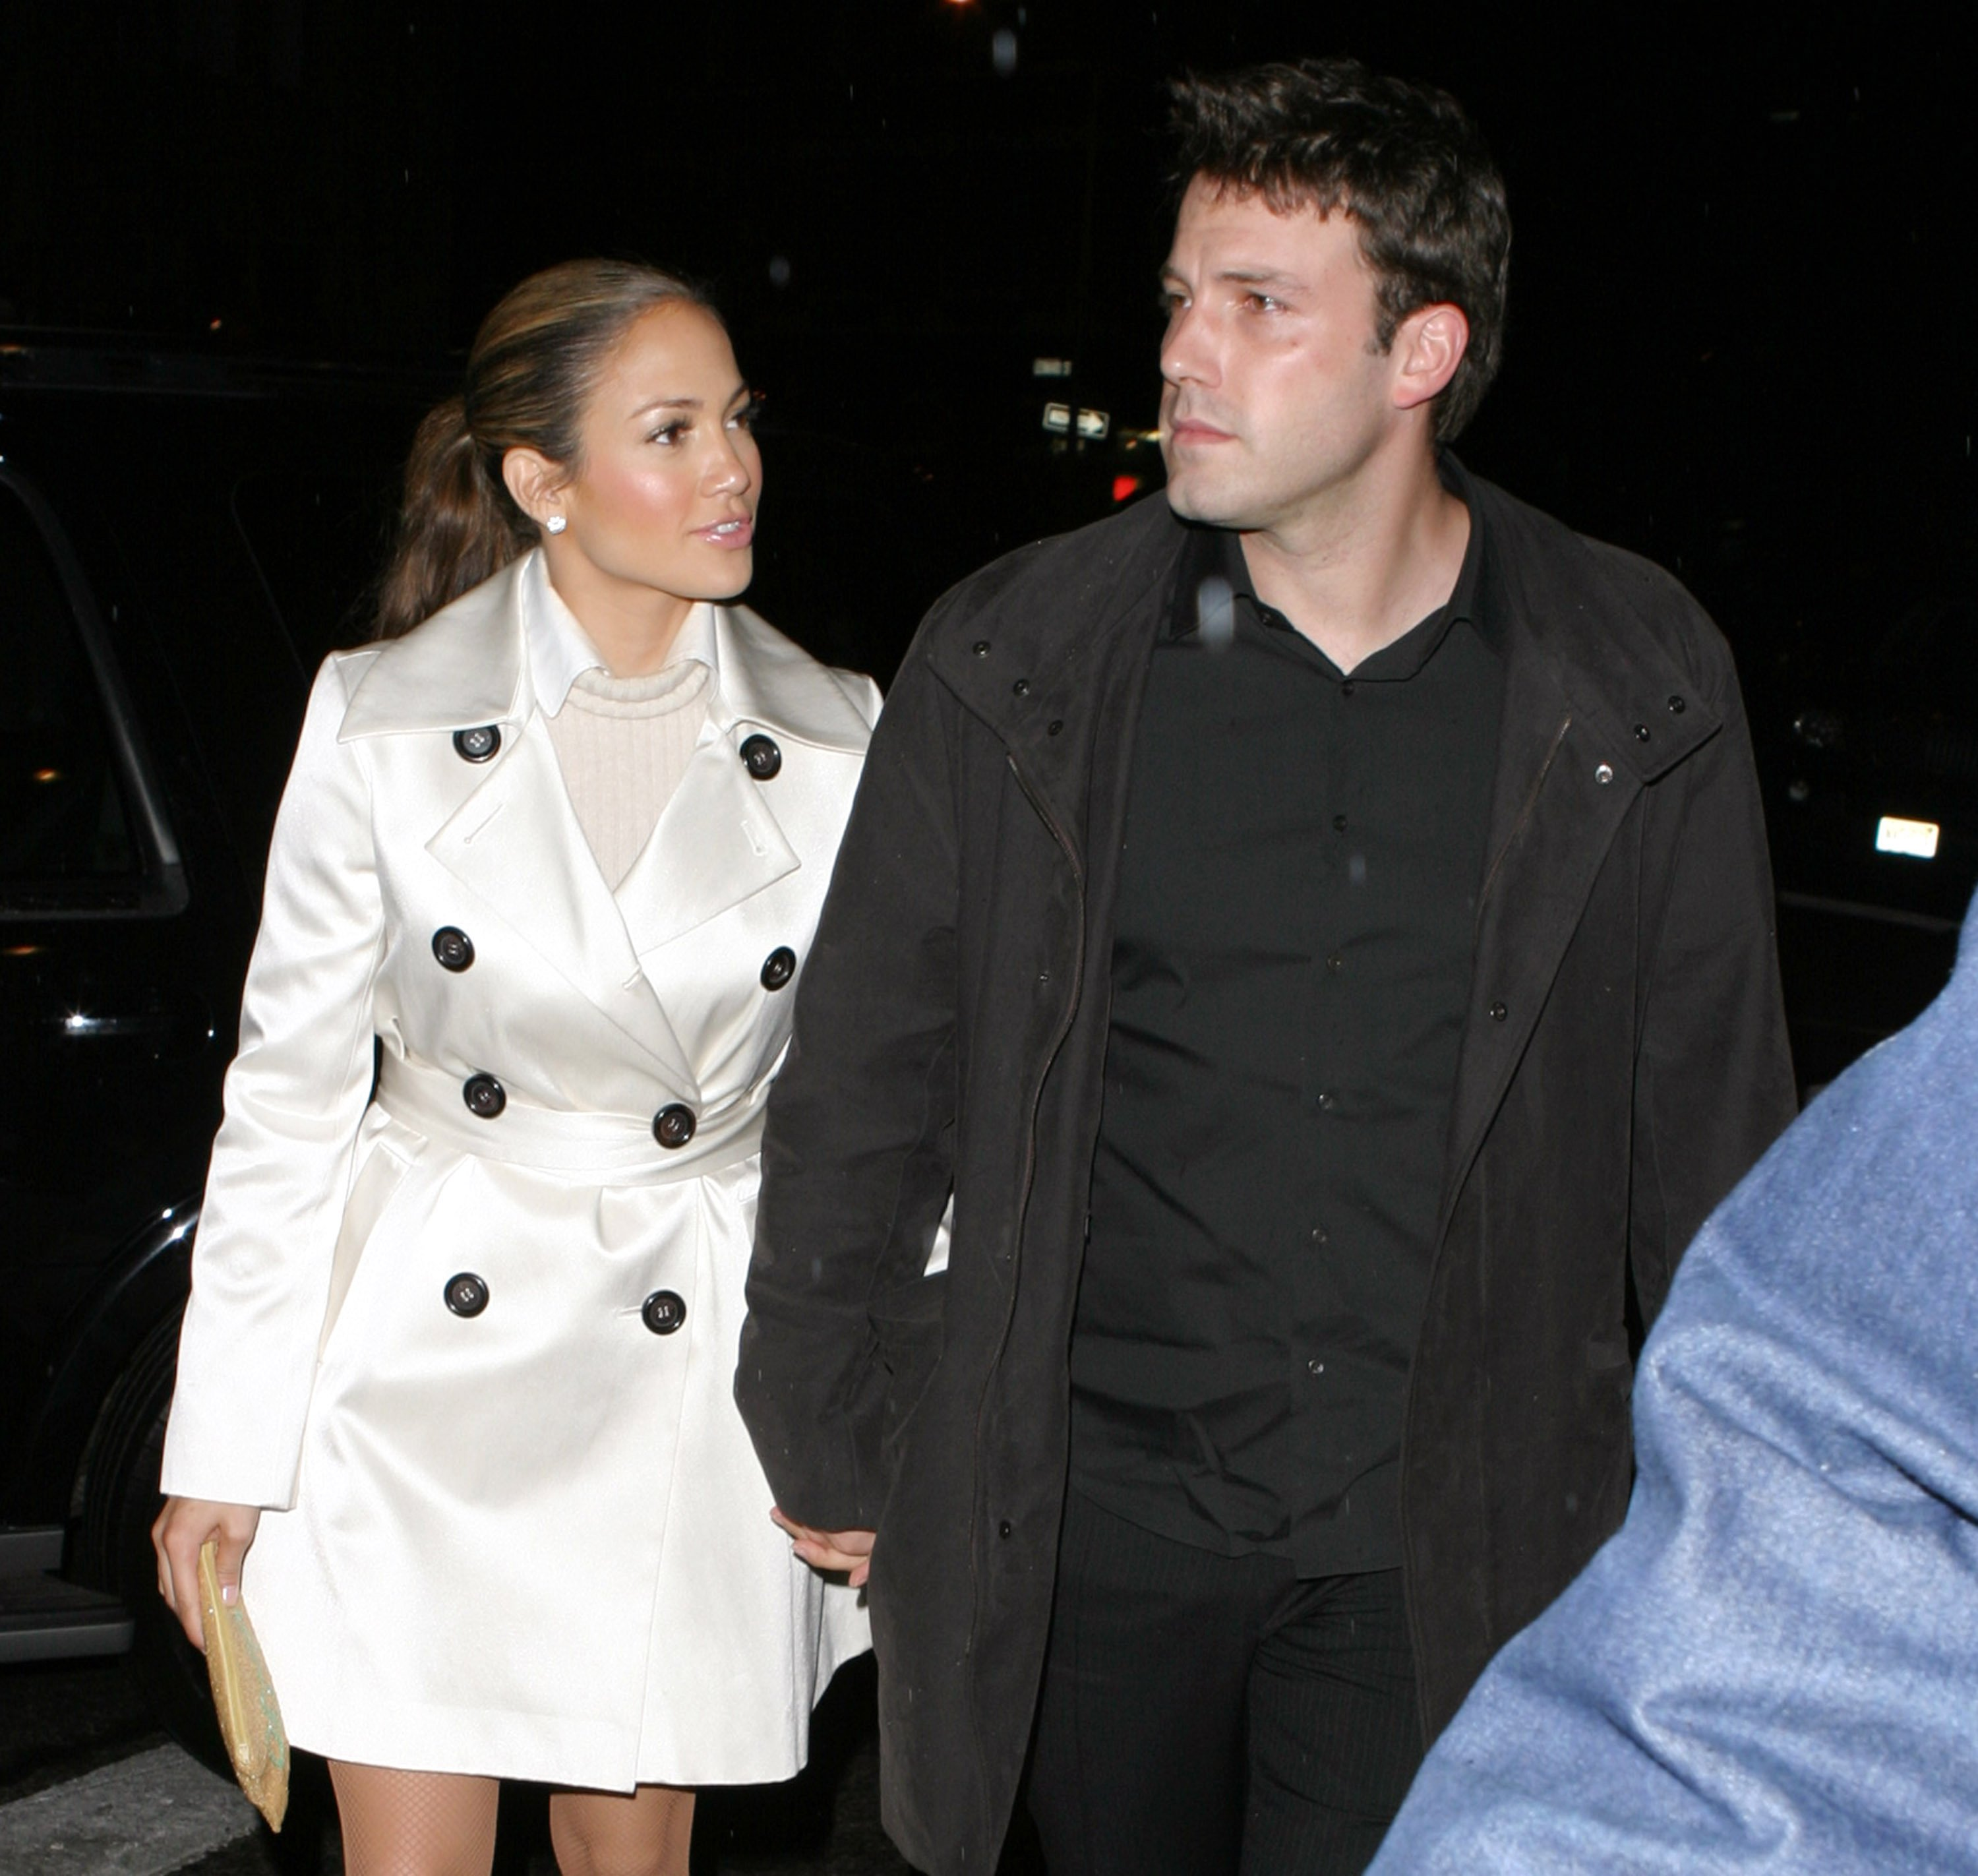 An undated image of Jennifer Lopez and Ben Affleck | Photo: Getty Images